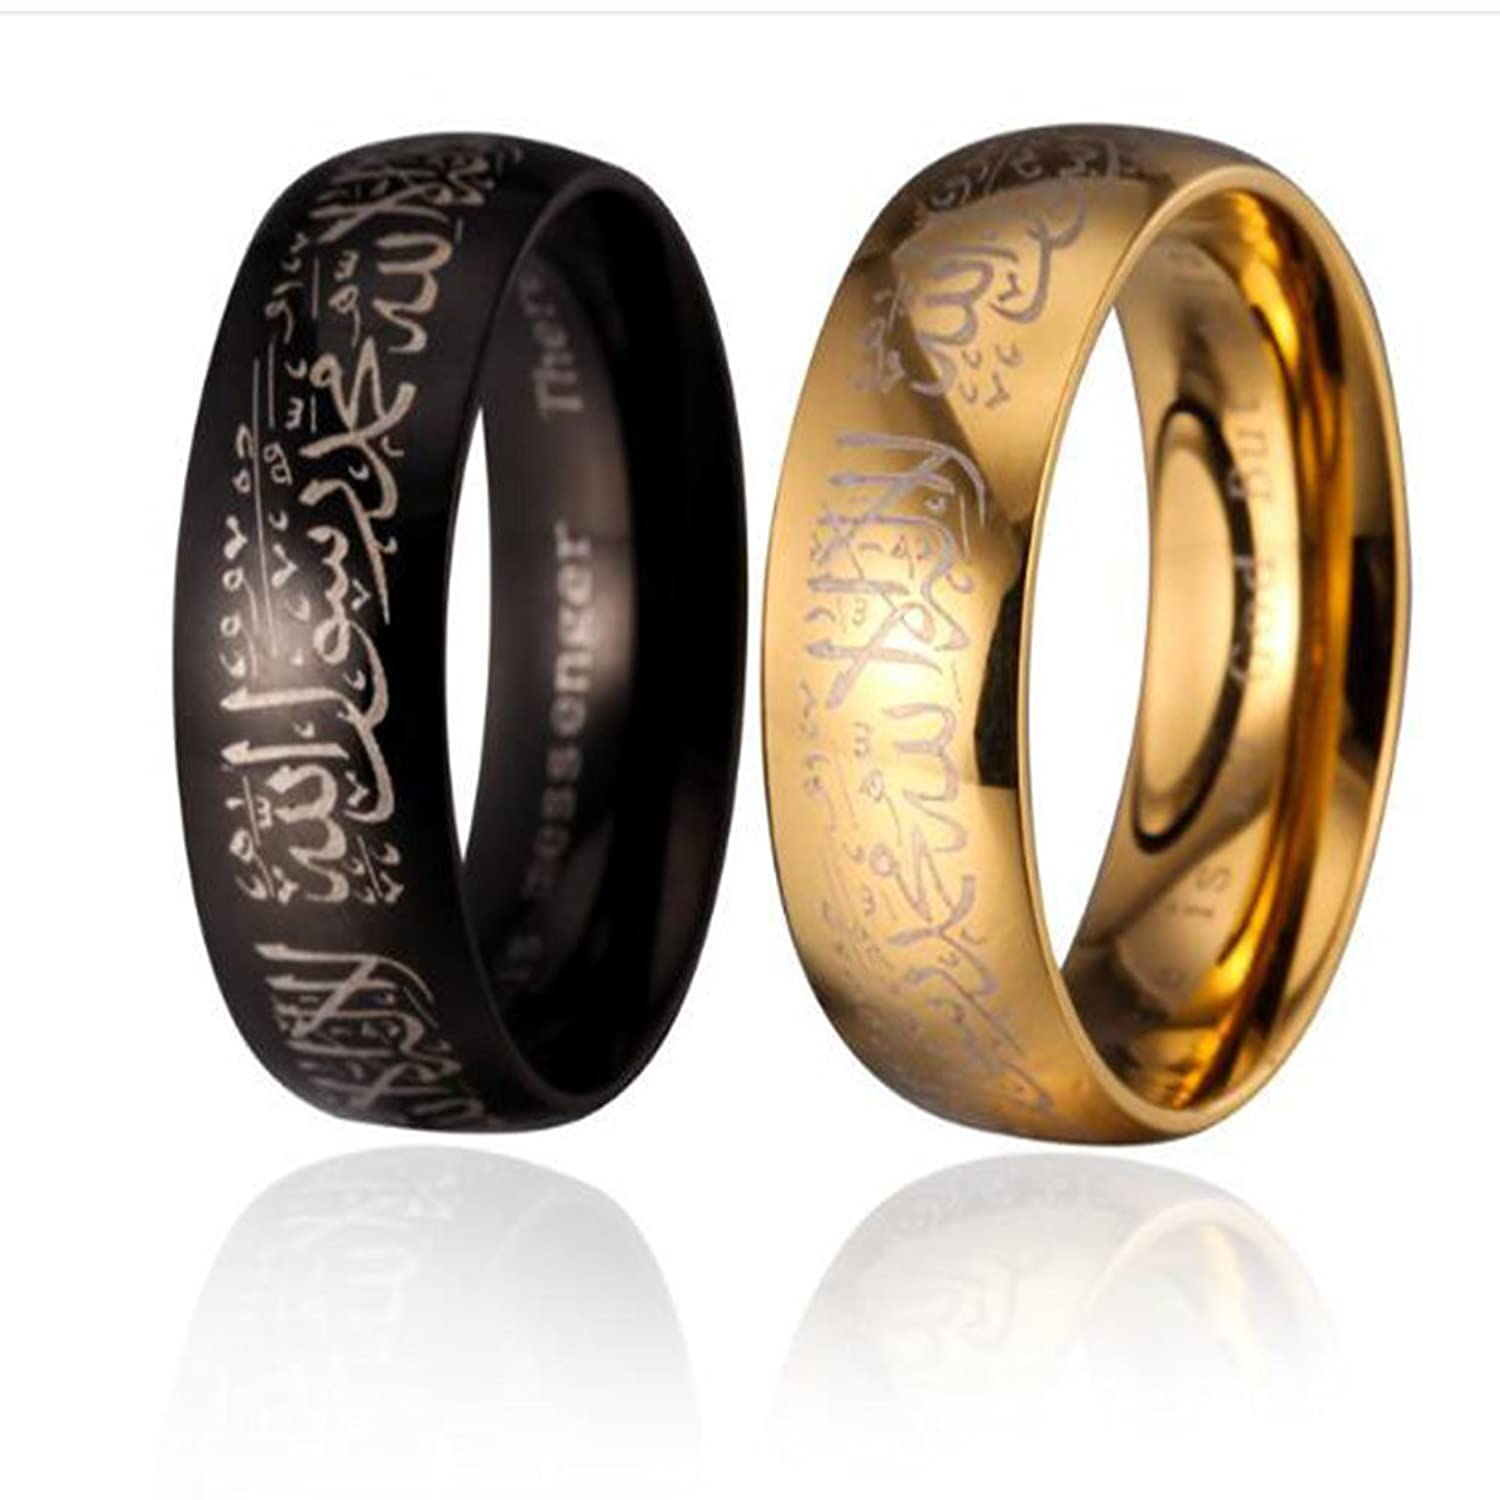 PAURO 316l Stainless Steel Muslim Spinner Ring Band with Shahada in Arabic & English Black/Gold aXet1N72